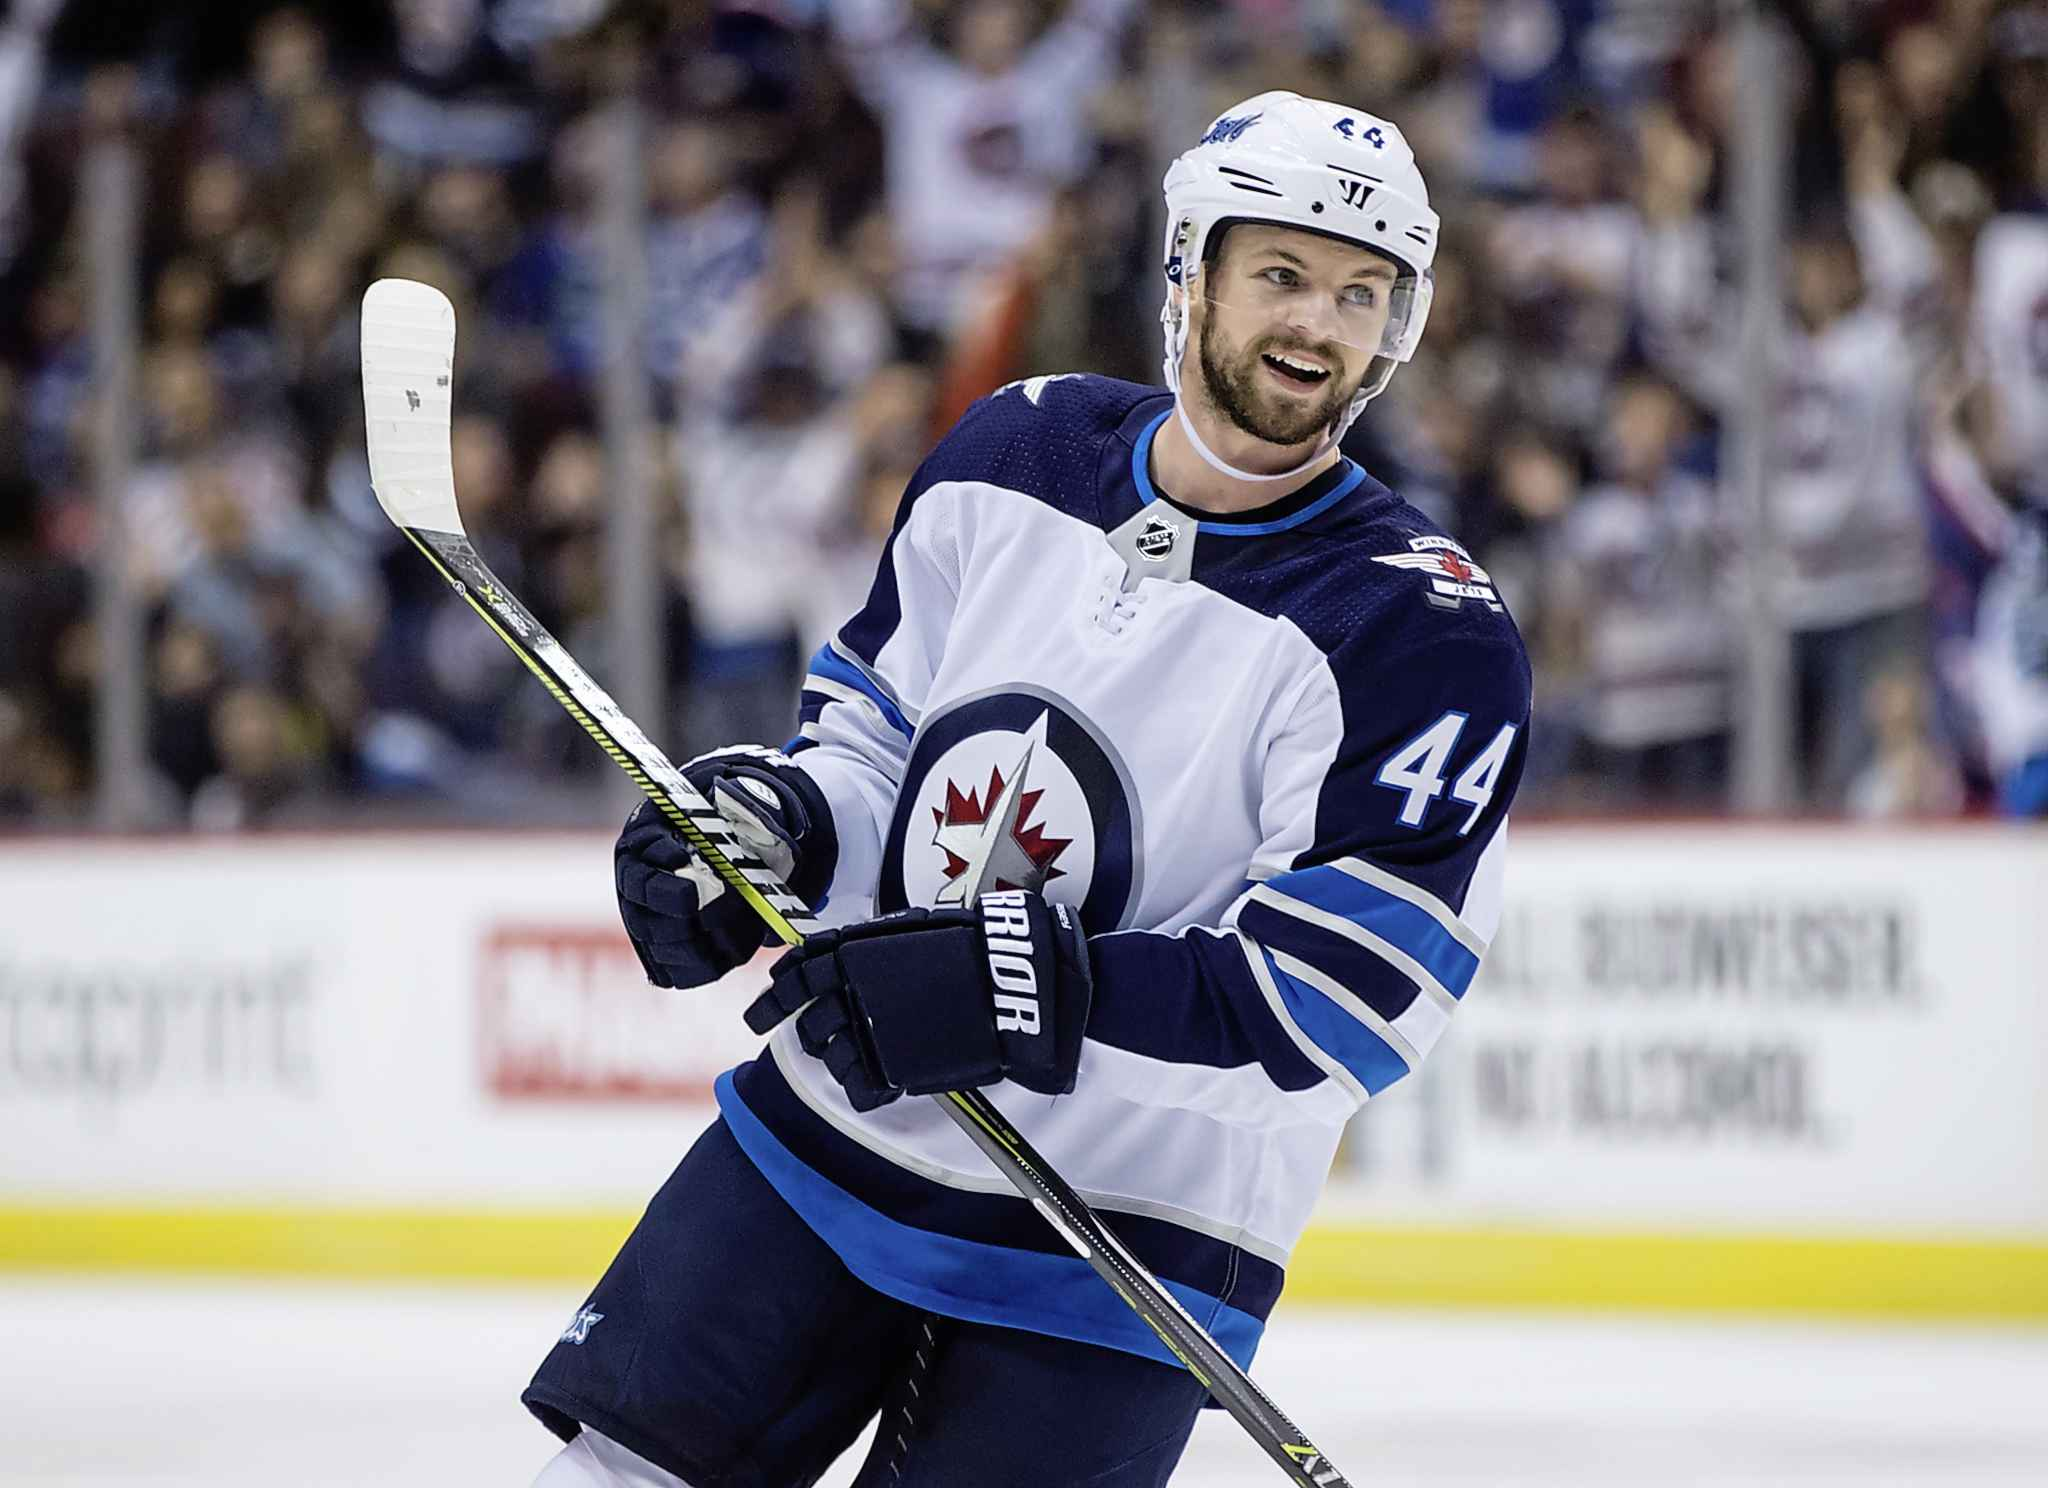 Winnipeg Jets' Josh Morrissey has the ability to produce points according to former Calgary Flames GM Craig Button. Putting up points helps you get paid in the NHL.